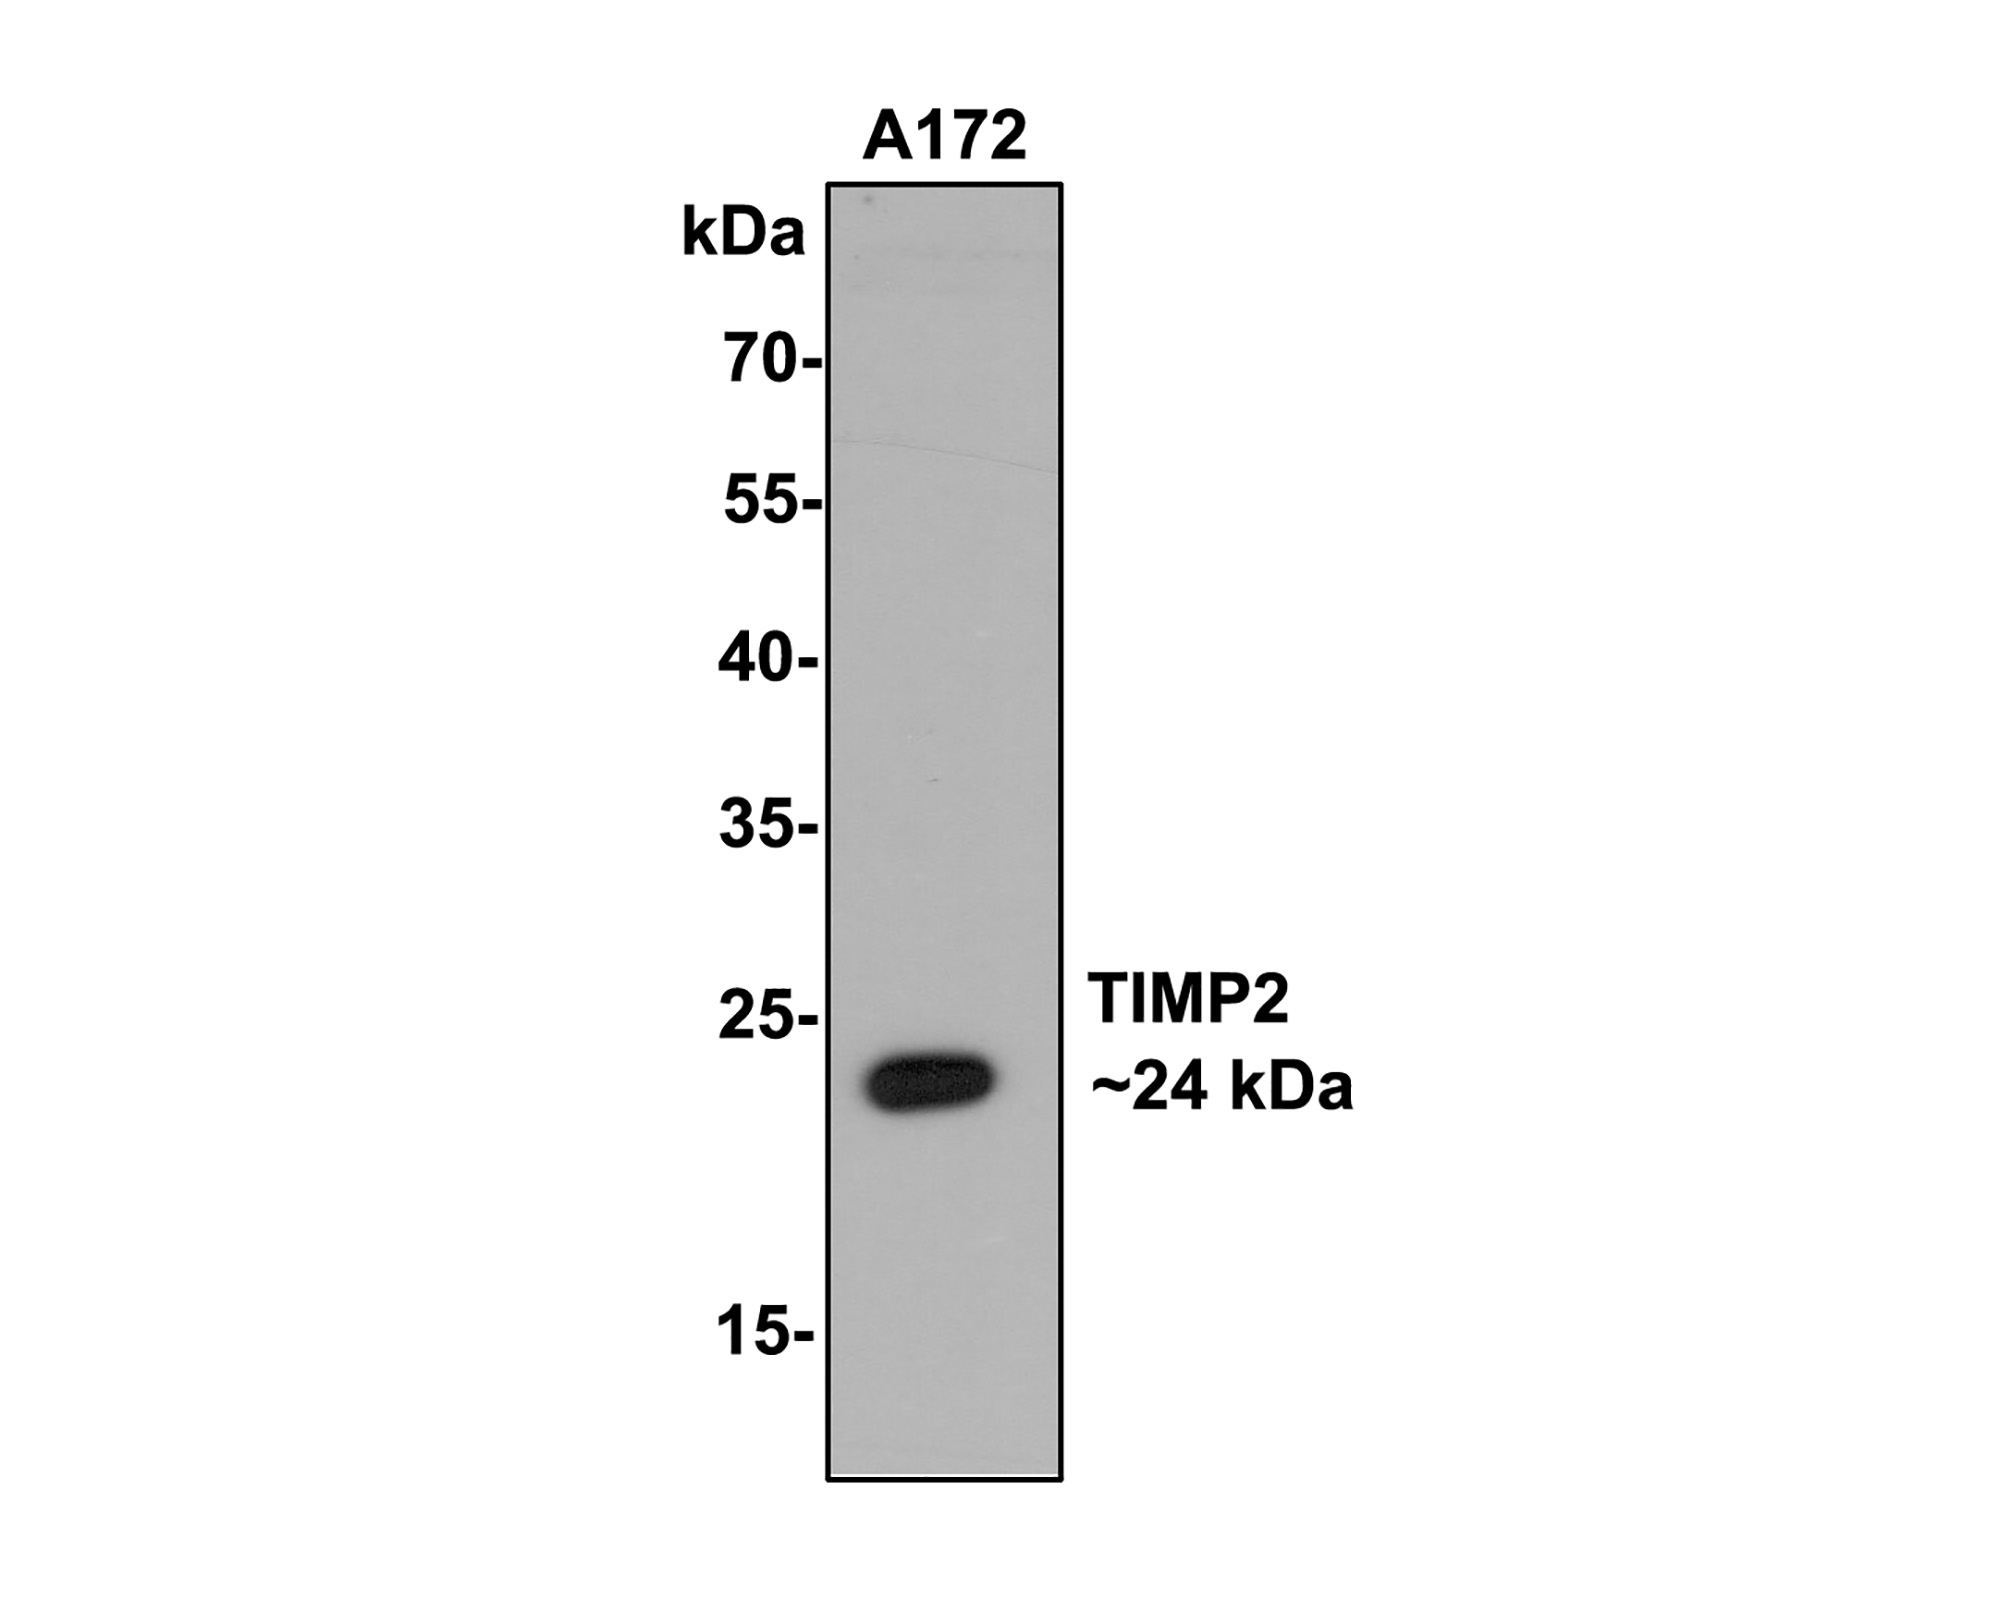 Flow cytometric analysis of TIMP2 was done on Hela cells. The cells were fixed, permeabilized and stained with the primary antibody (ET1703-81, 1/50) (red). After incubation of the primary antibody at room temperature for an hour, the cells were stained with a Alexa Fluor 488-conjugated Goat anti-Rabbit IgG Secondary antibody at 1/1000 dilution for 30 minutes.Unlabelled sample was used as a control (cells without incubation with primary antibody; black).